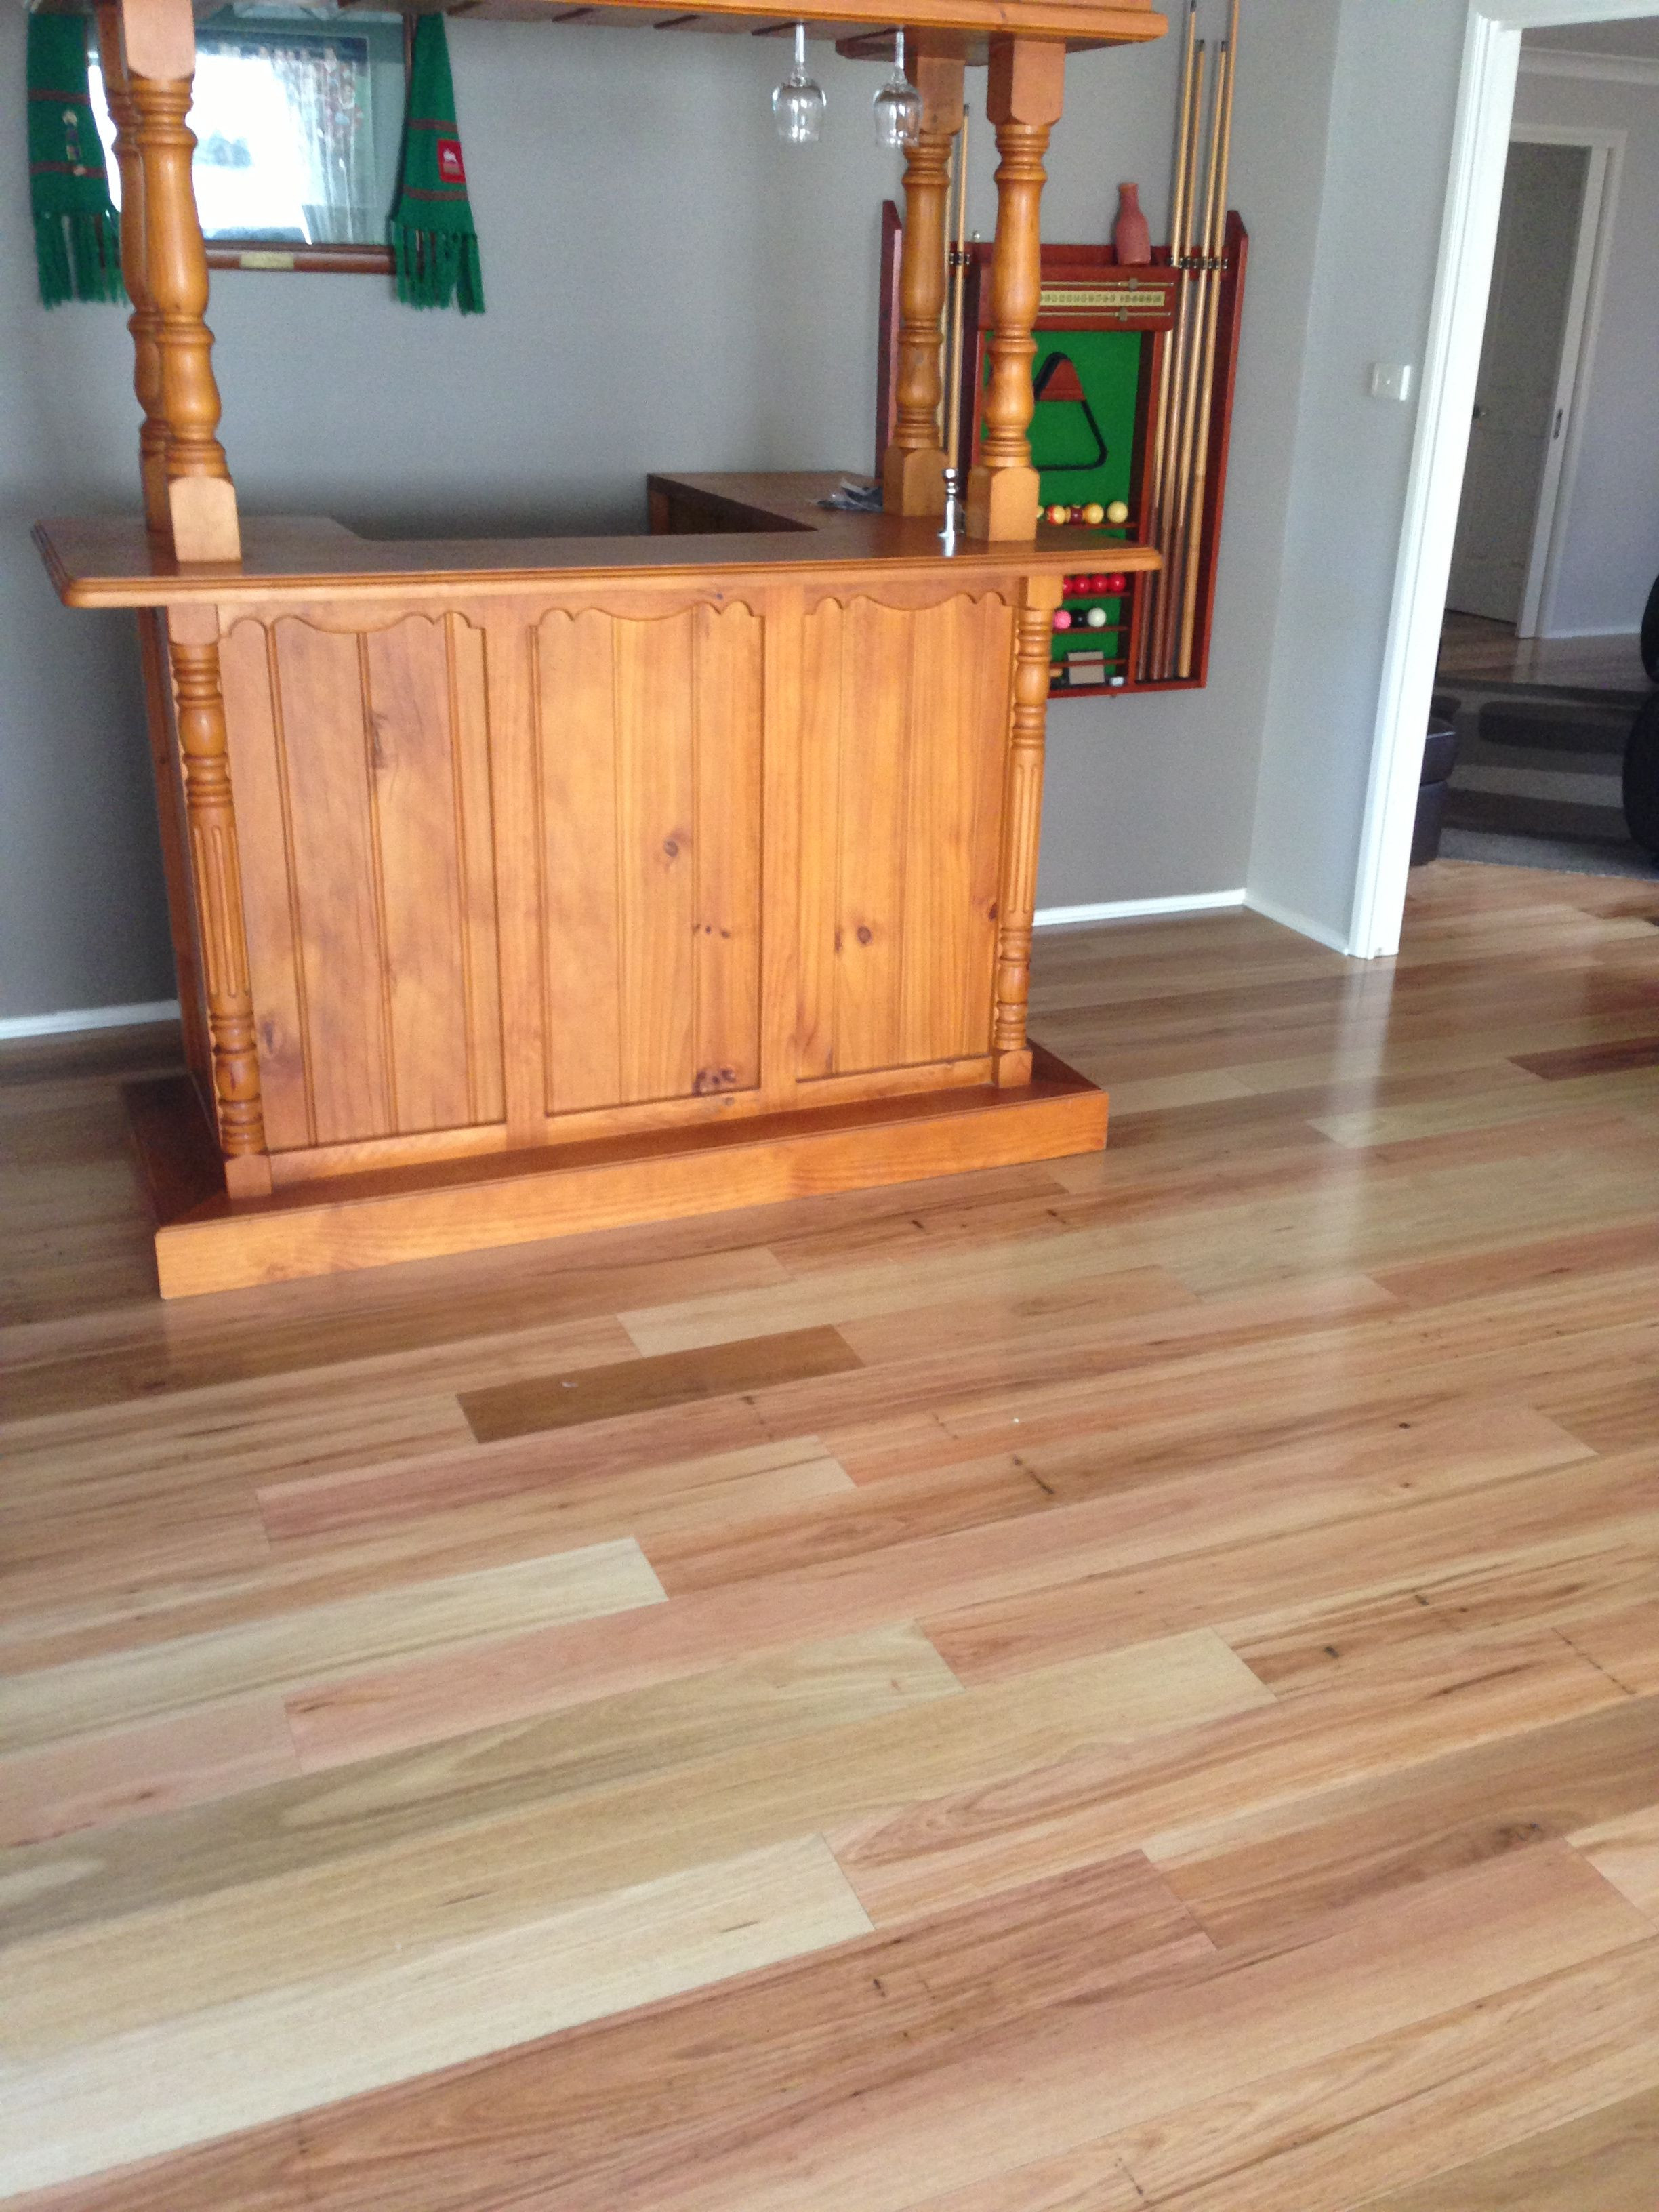 hardwood flooring perth of timbermax timber flooring blackbutt flooring pinterest in timbermax timber flooring blackbutt